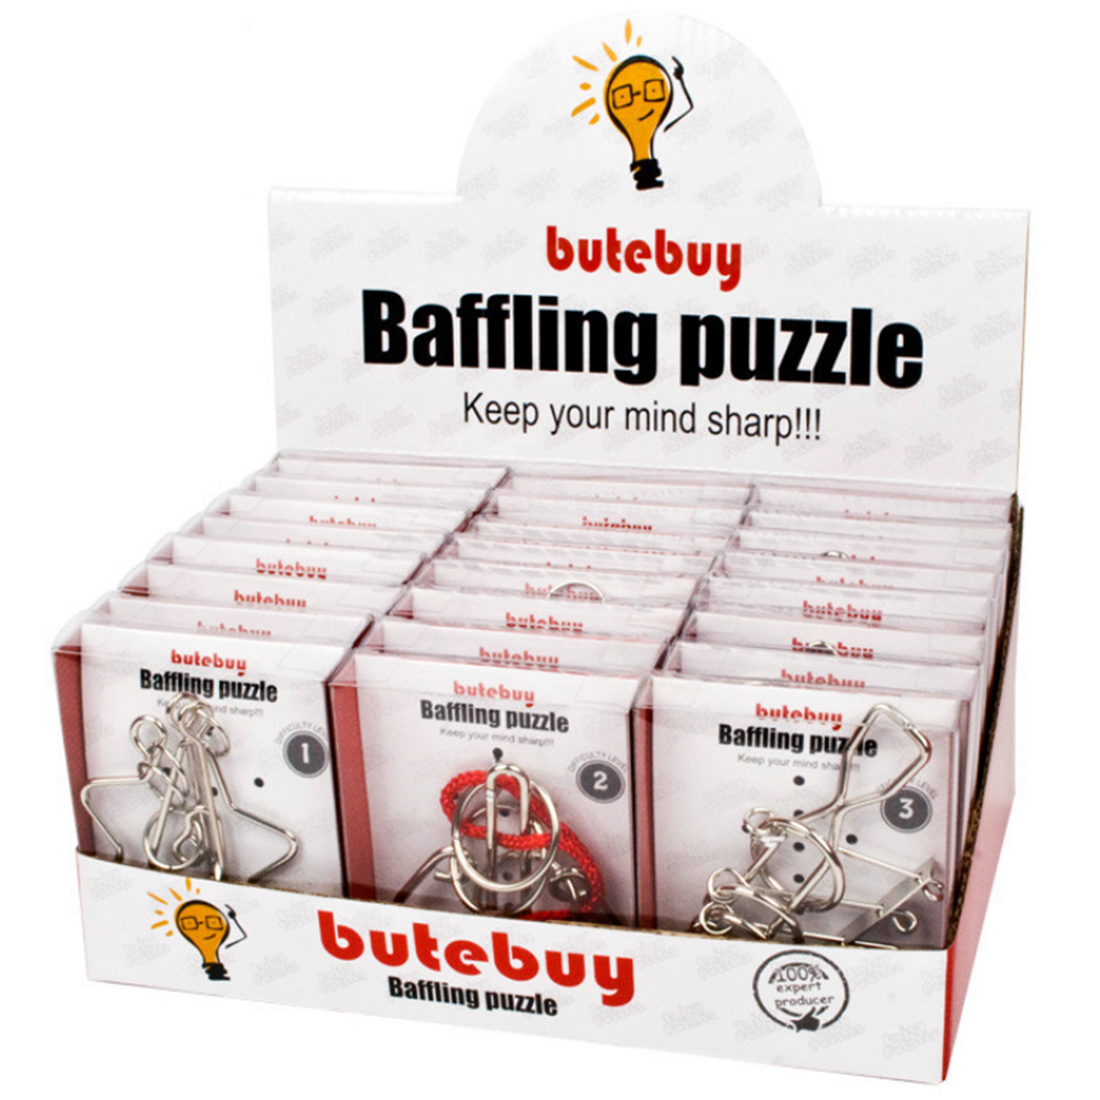 24Pcs Metal Wire Puzzles Brain Teaser Intellectual Puzzle Wire Interesting IQ Mind Brain Teaser Puzzles for Children Adults brain games for clever kids puzzles to exercise your mind